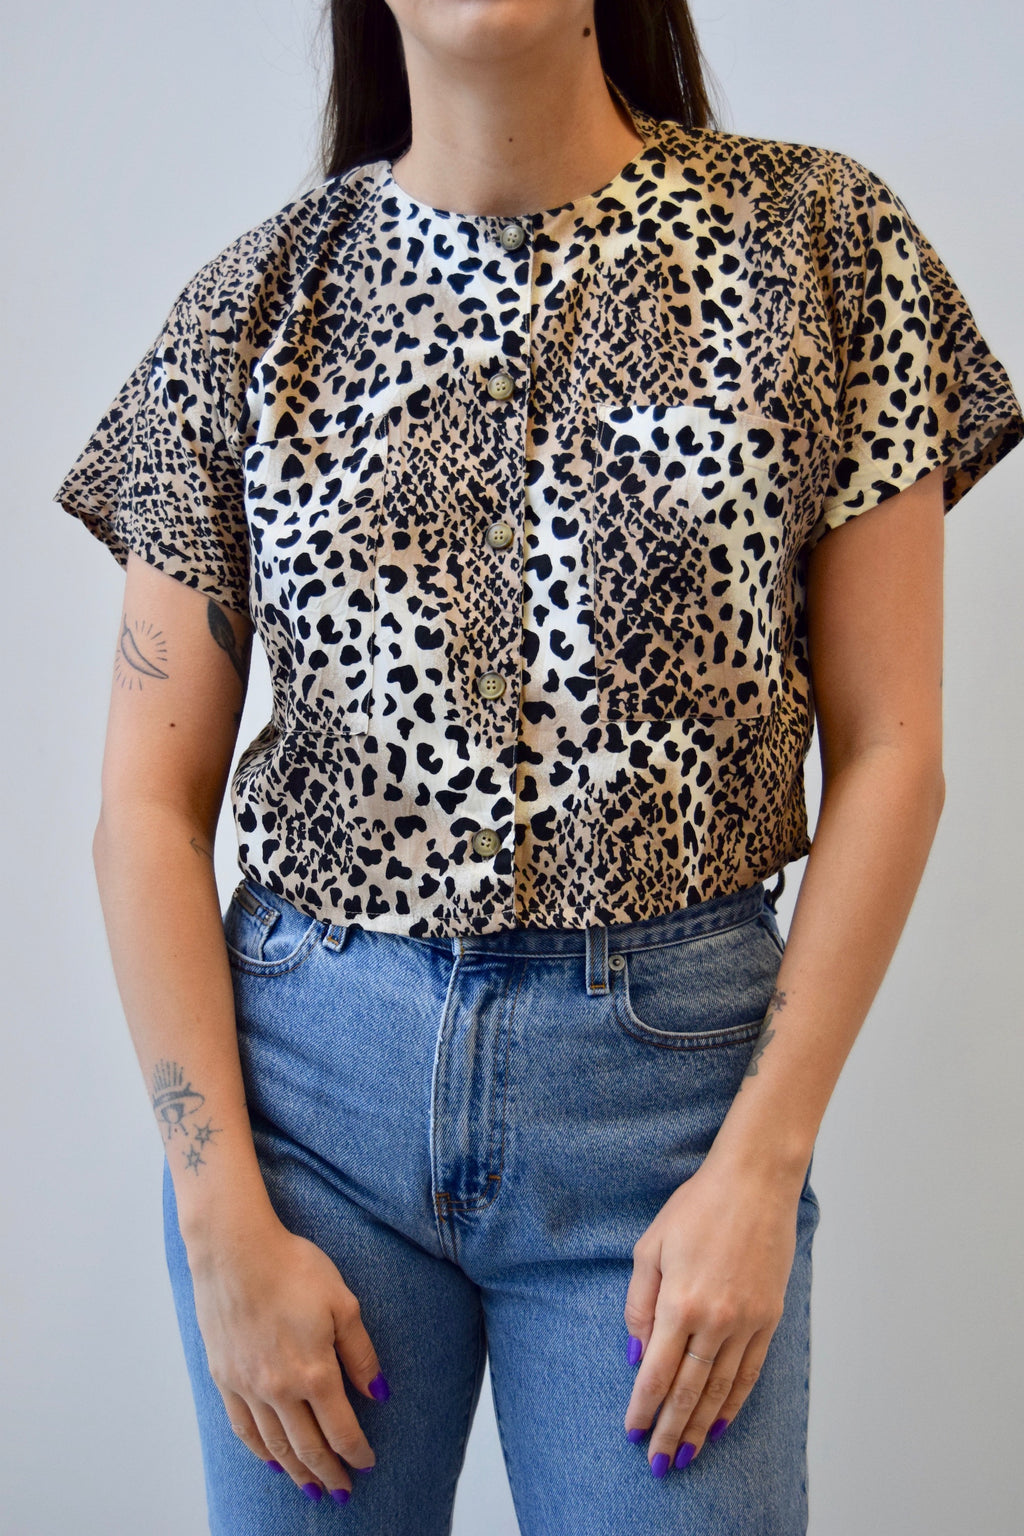 90's Rayon Leopard Print Crop Top FREE SHIPPING TO THE U.S.